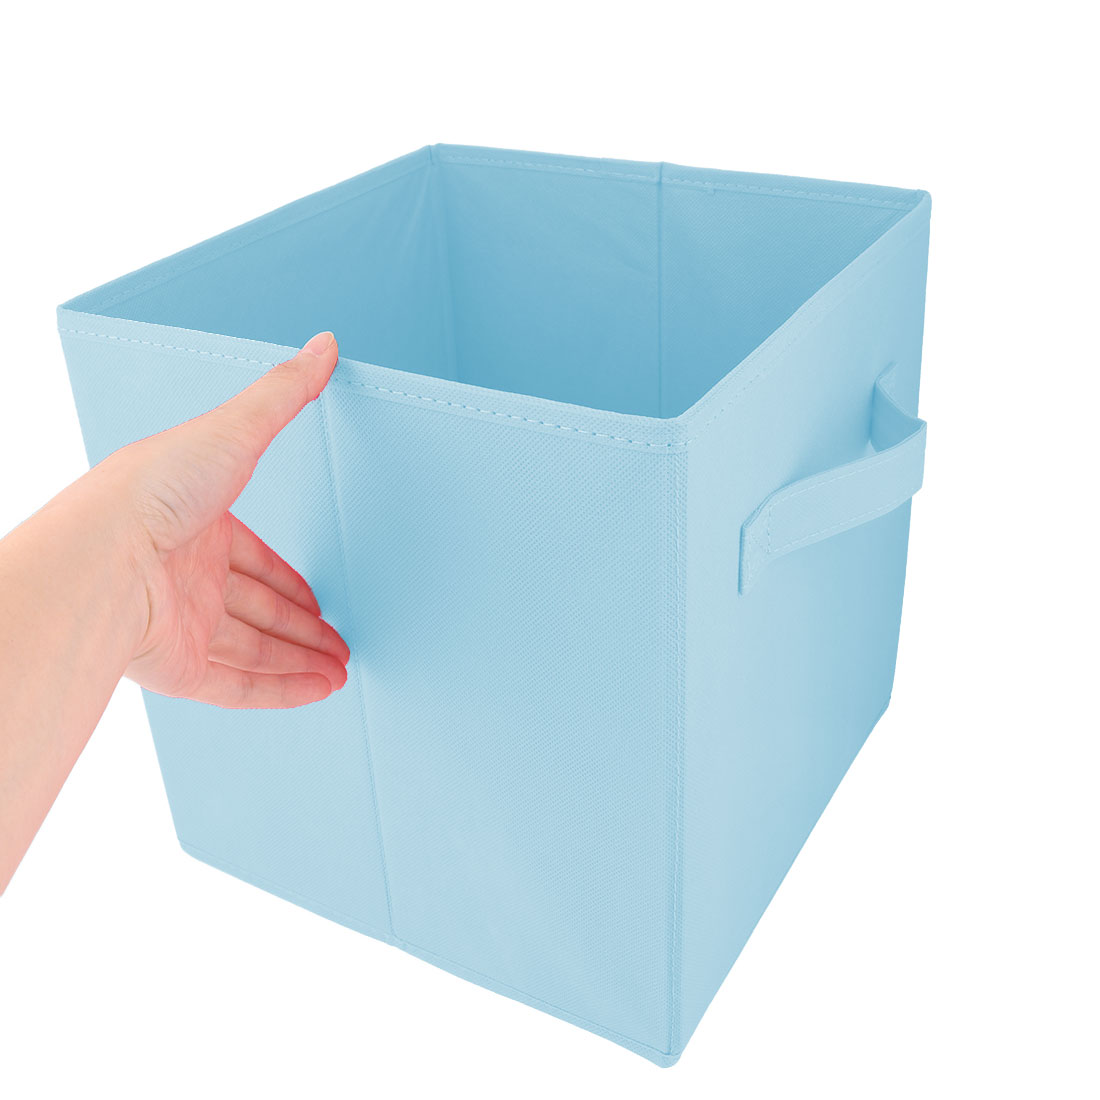 Apartment Non-woven Fabric Foldable Books Cosmetics Holder Storage Box Sky Blue - image 3 of 5